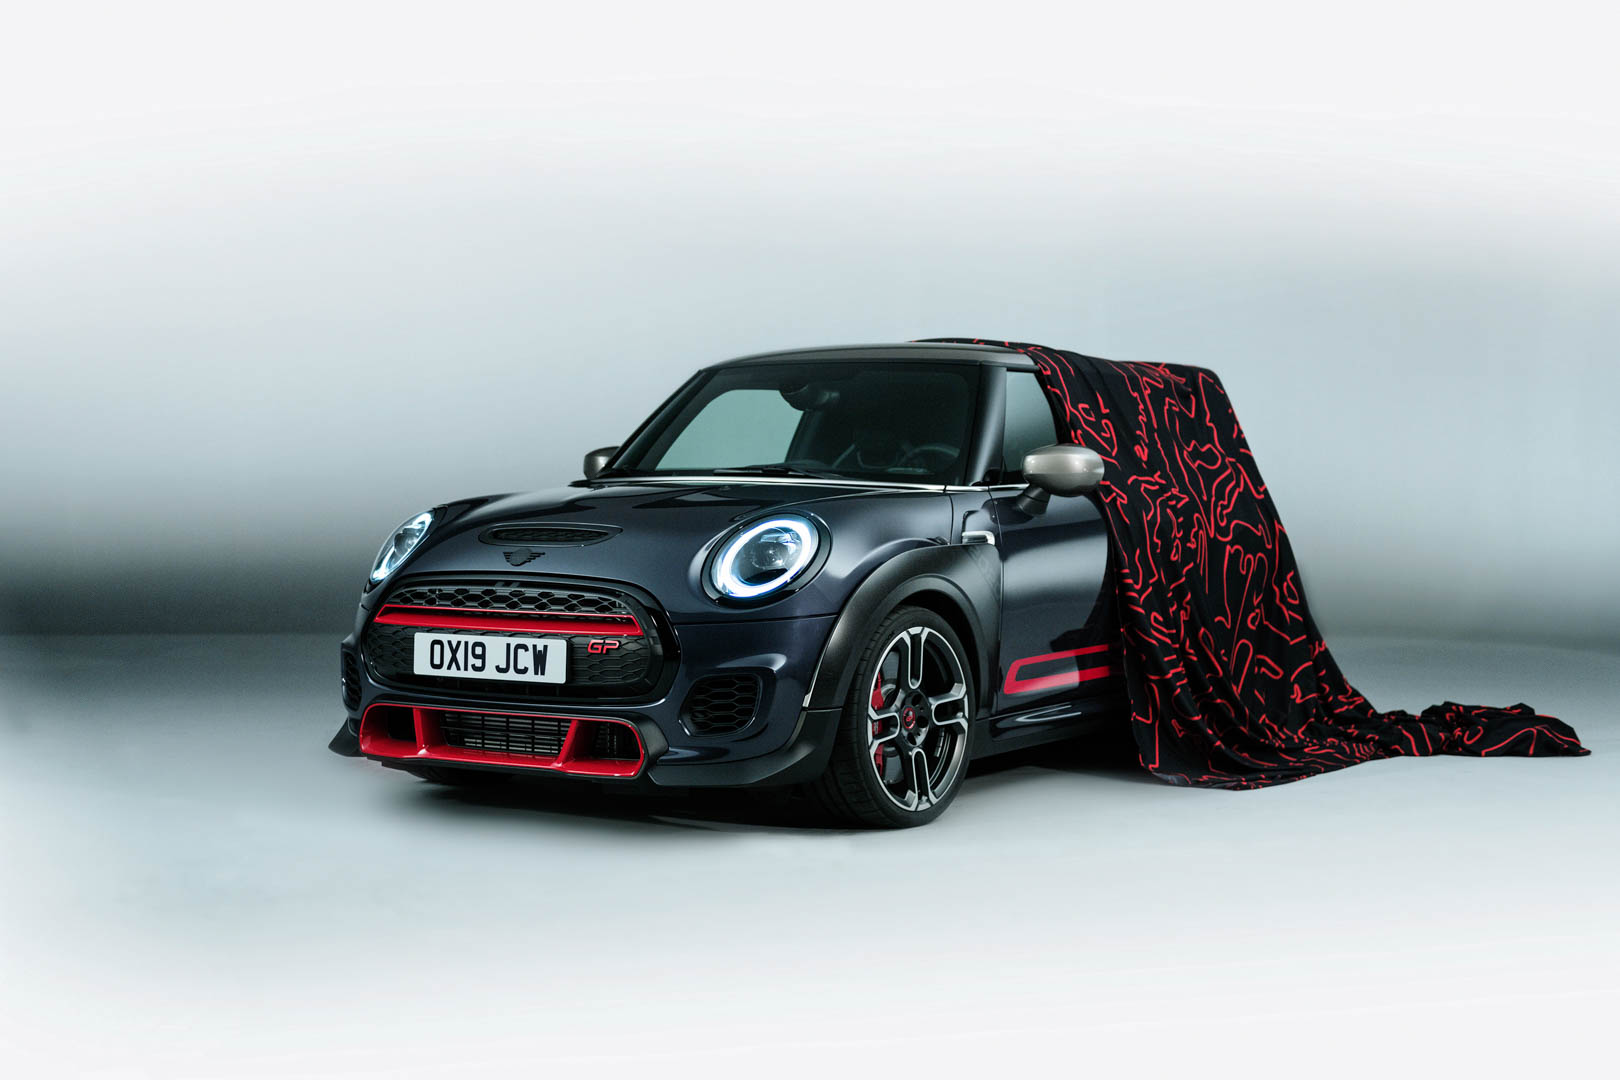 MINI John Cooper Works GP 21